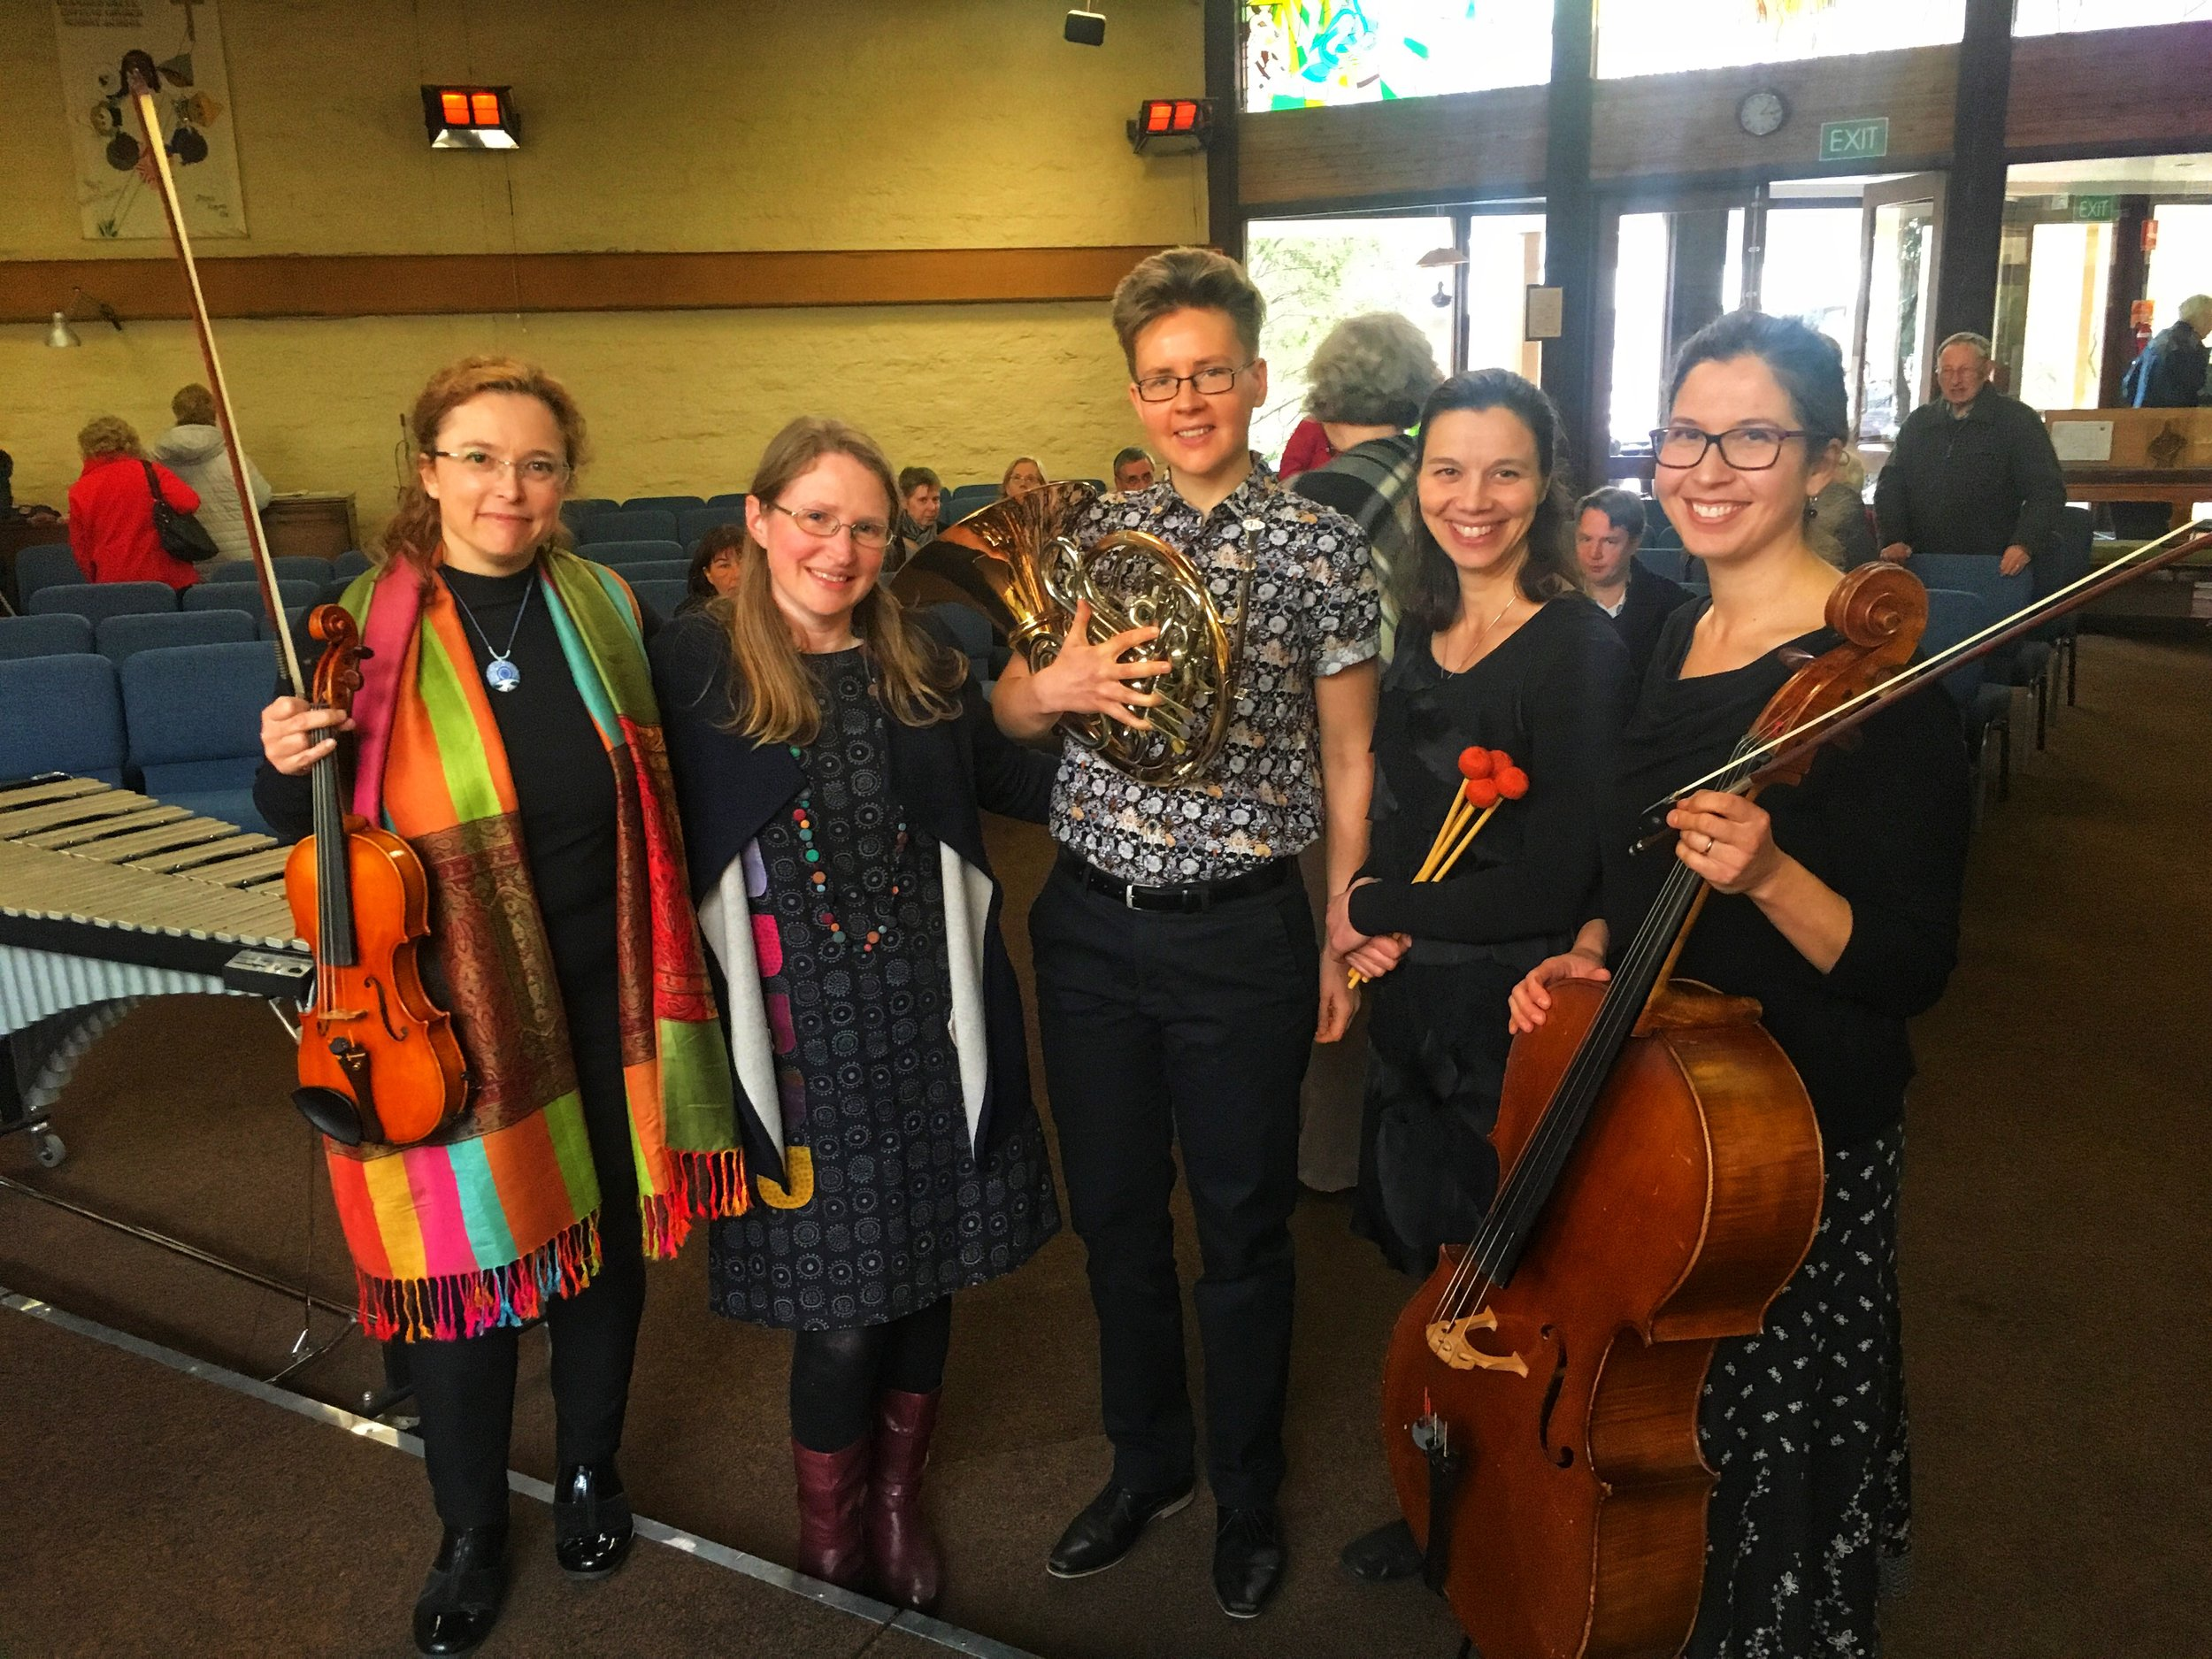 From left to right: Marianne Rothschild, Katherine Rawlings, Luca Vanags-Smith, Amy Valent, Karina Di Sisto